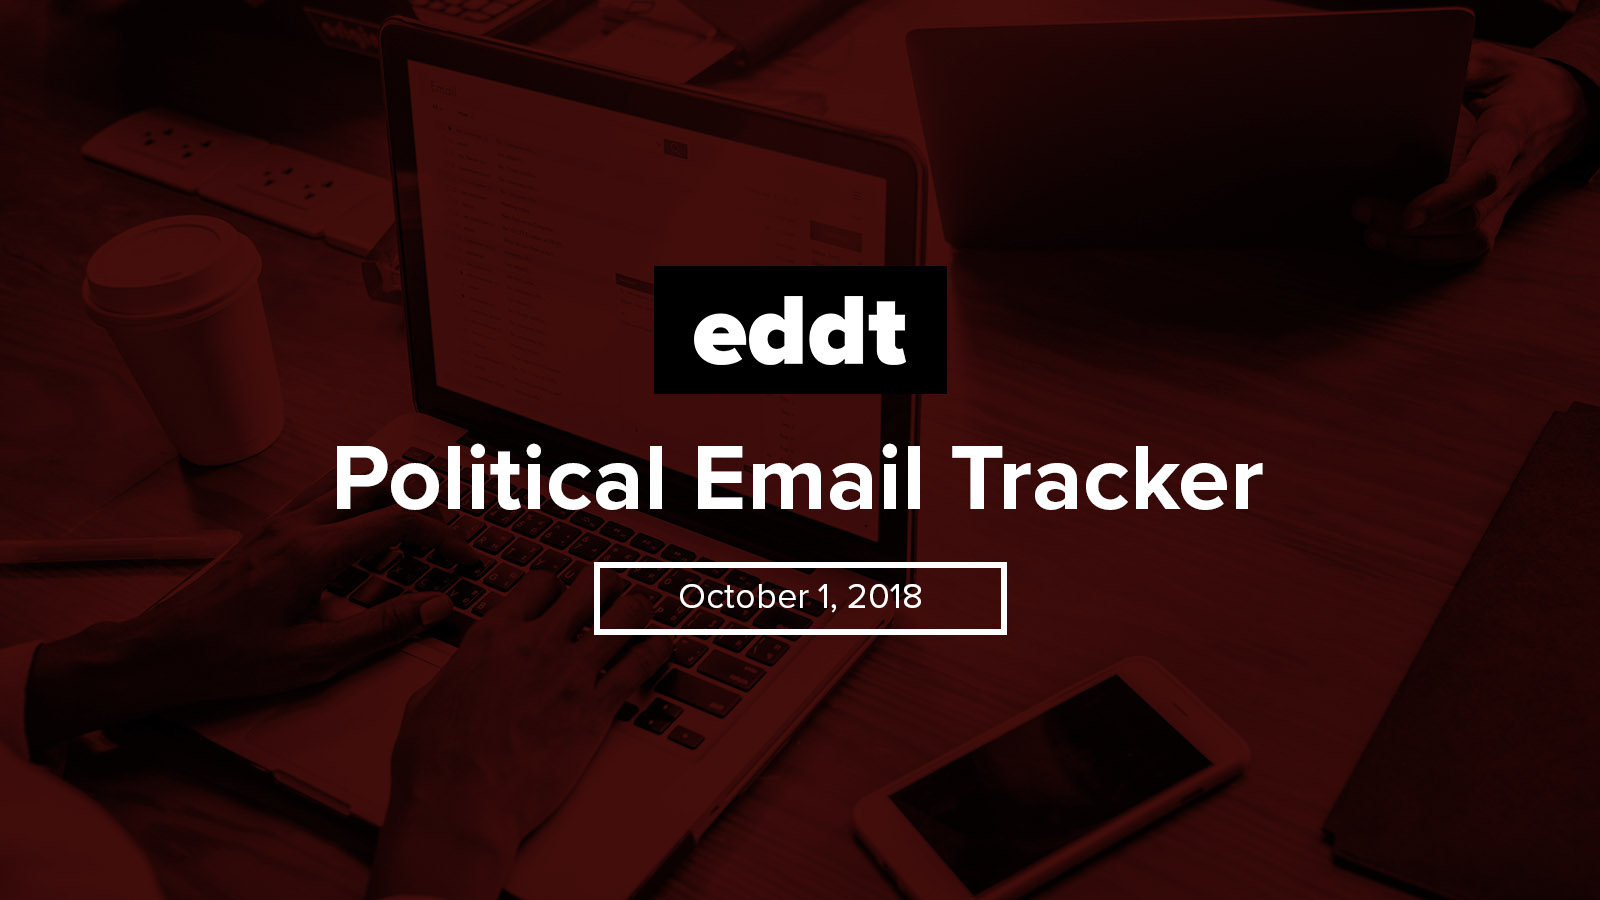 Political Email Tracker - October 1, 2018